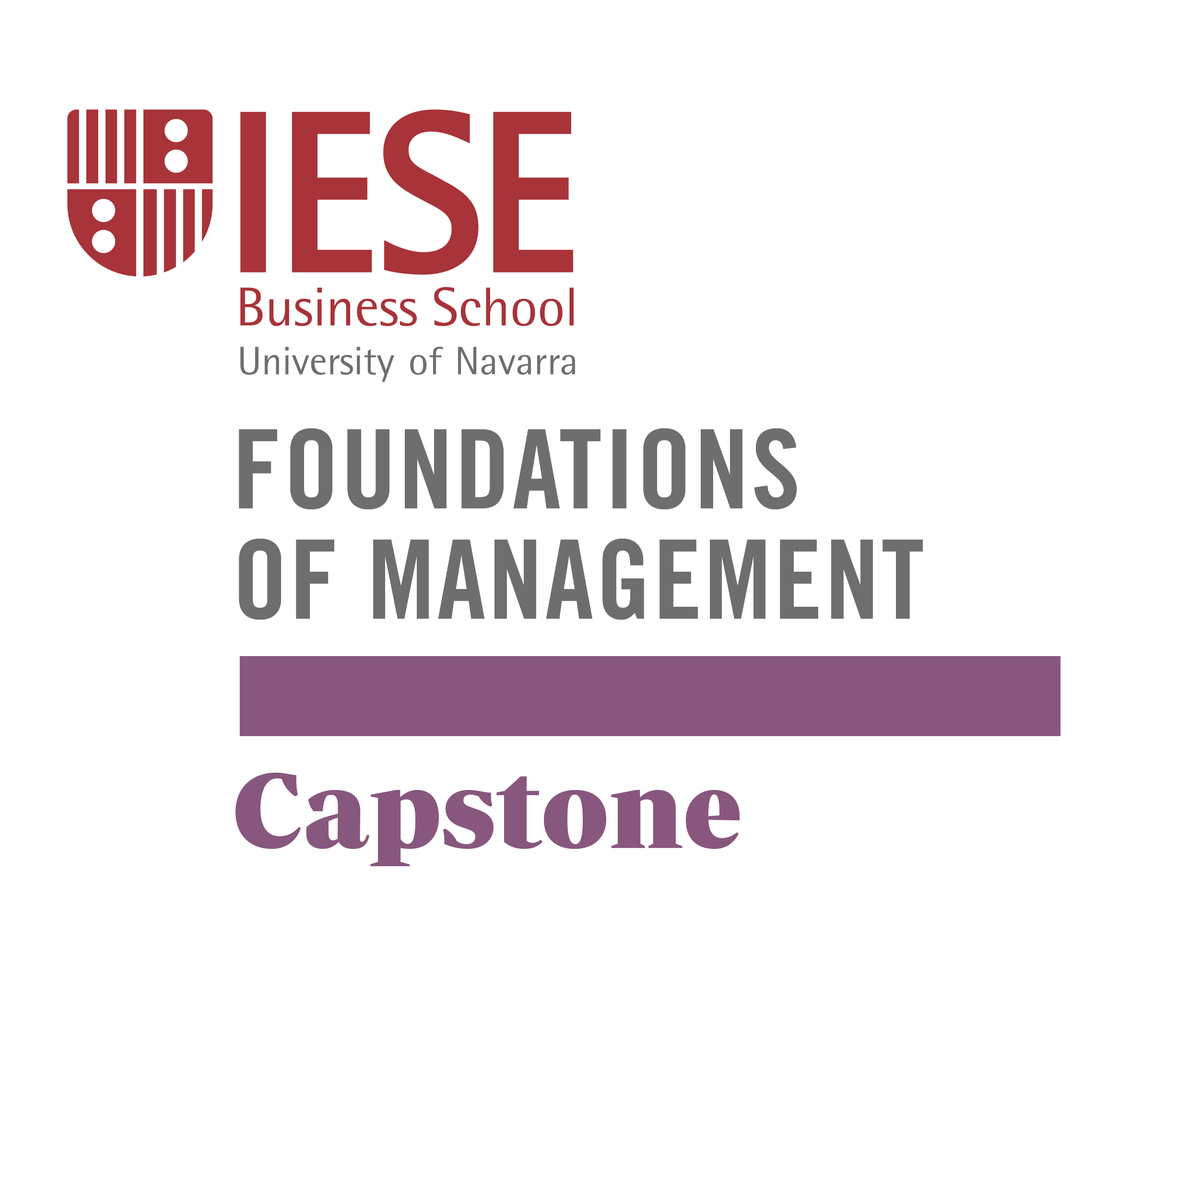 Capstone: Analysis of Business Problems